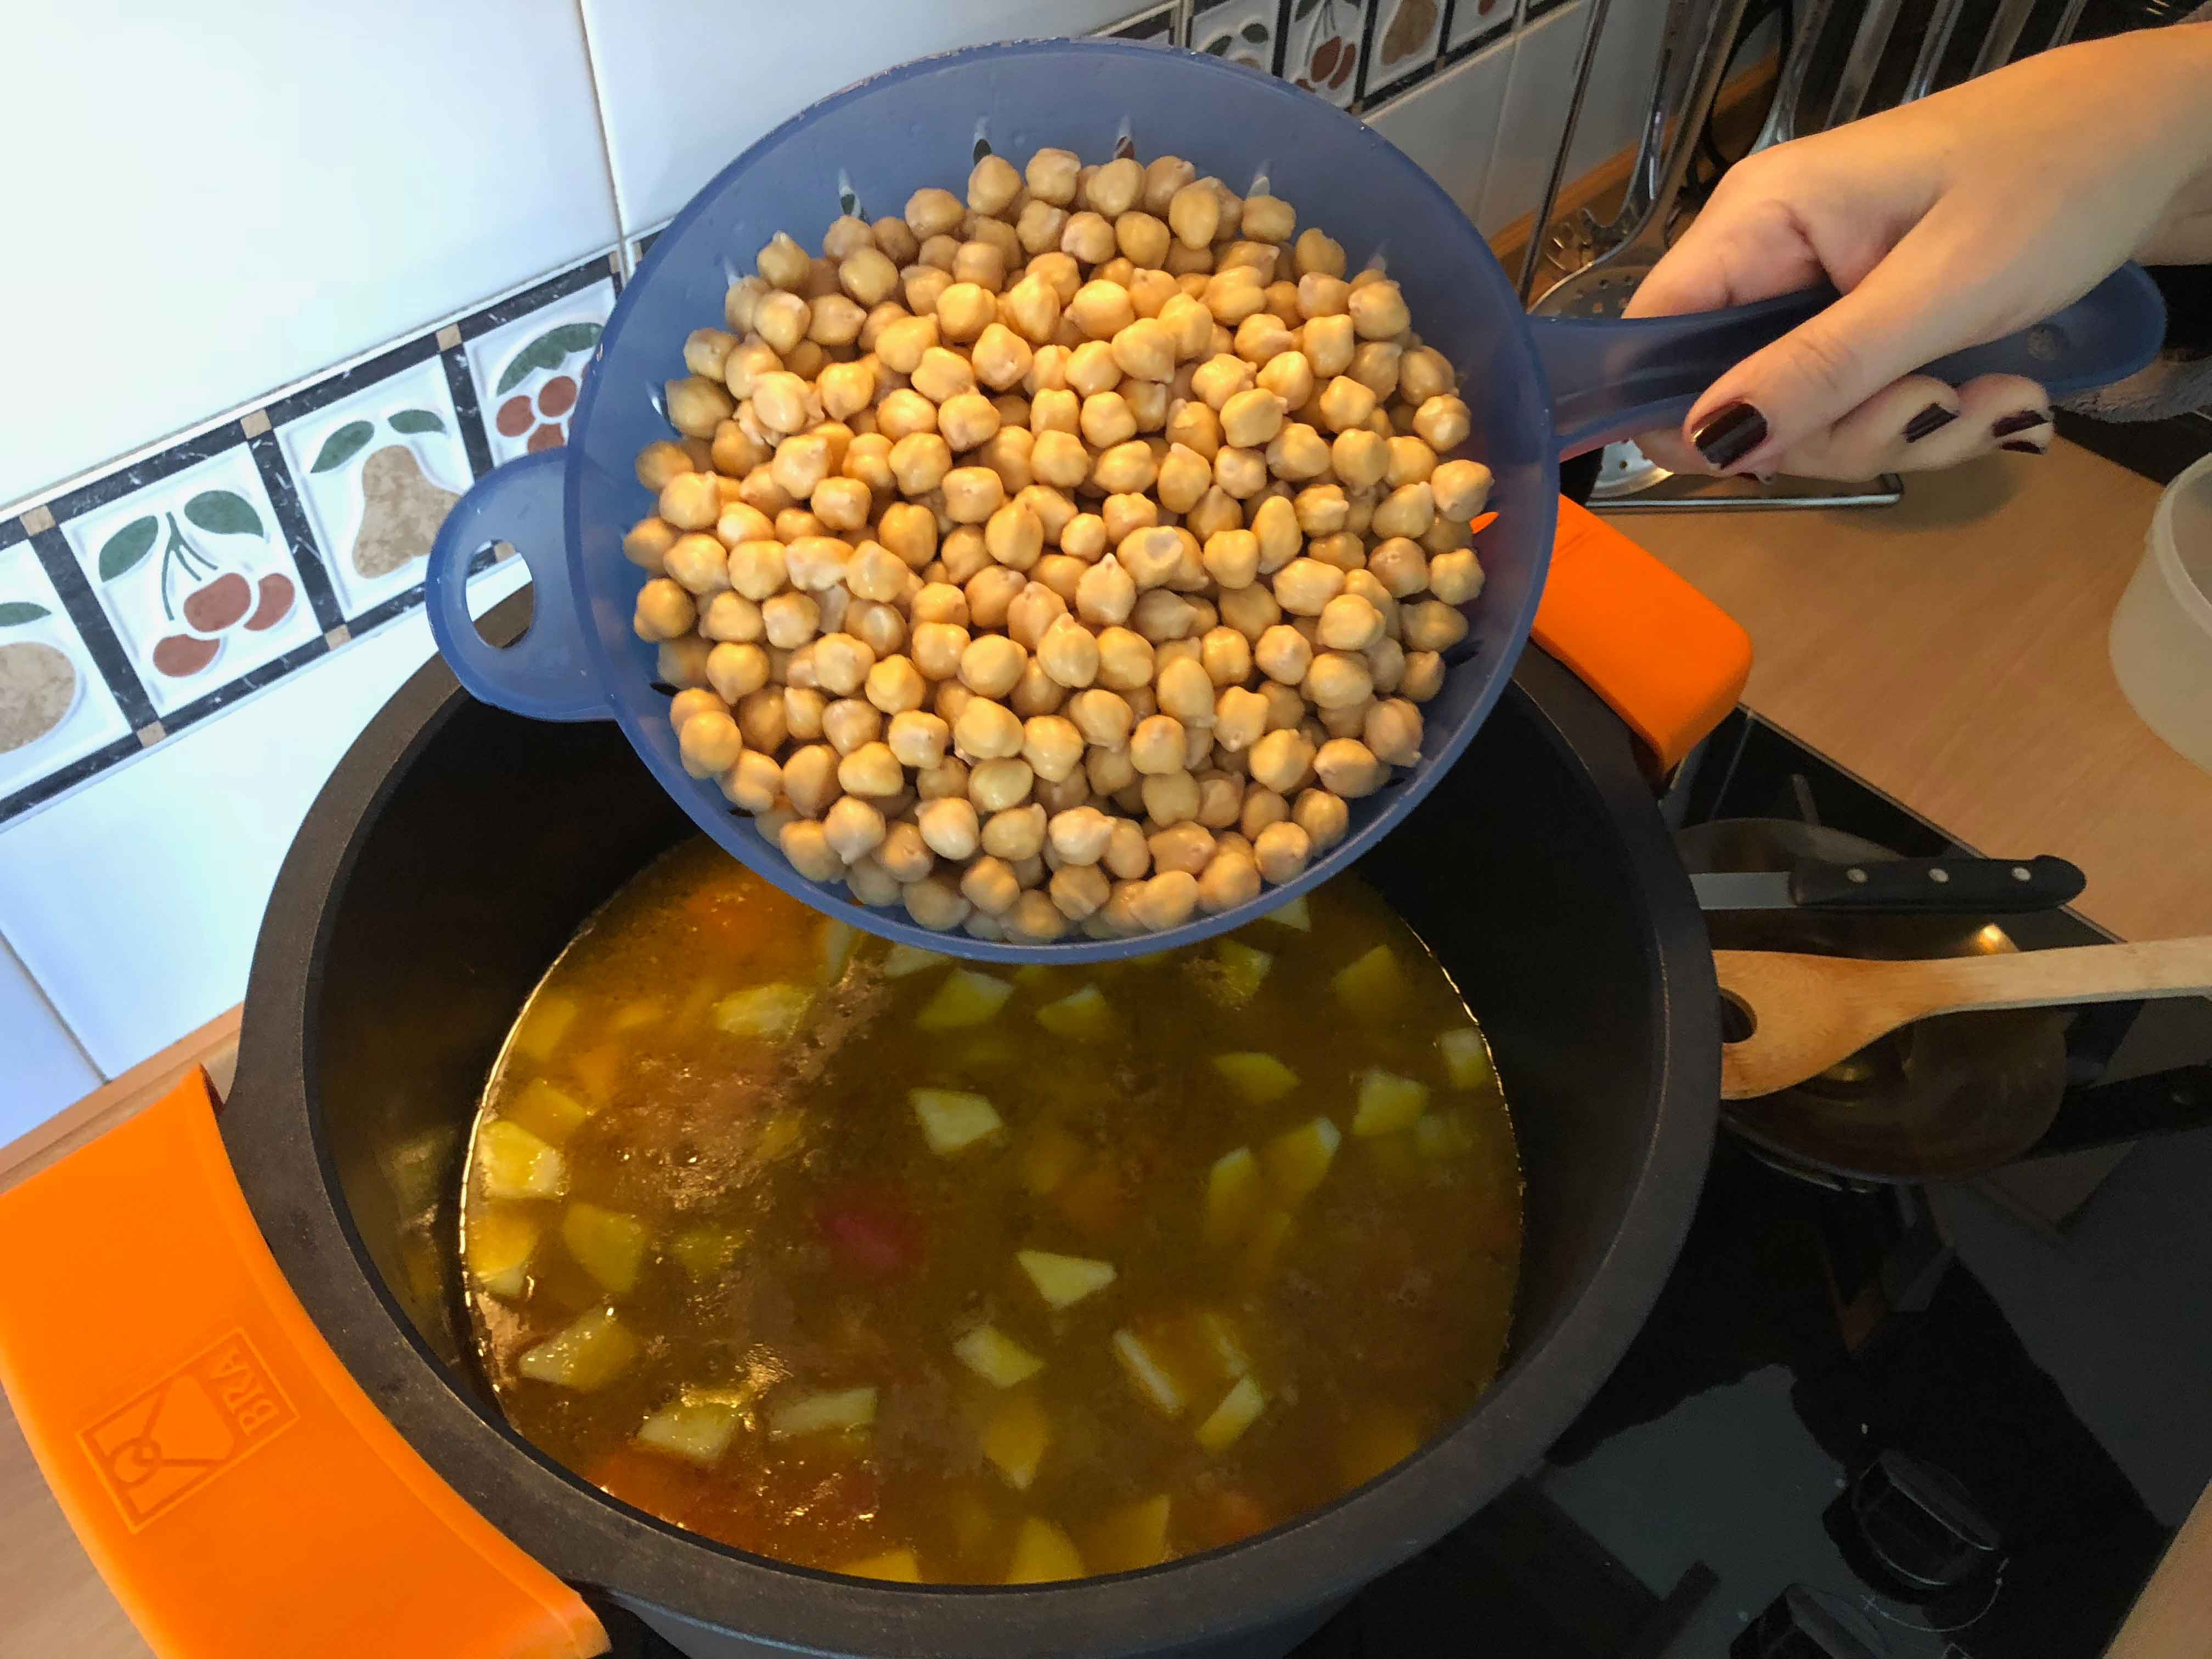 Introducimos los garbanzos